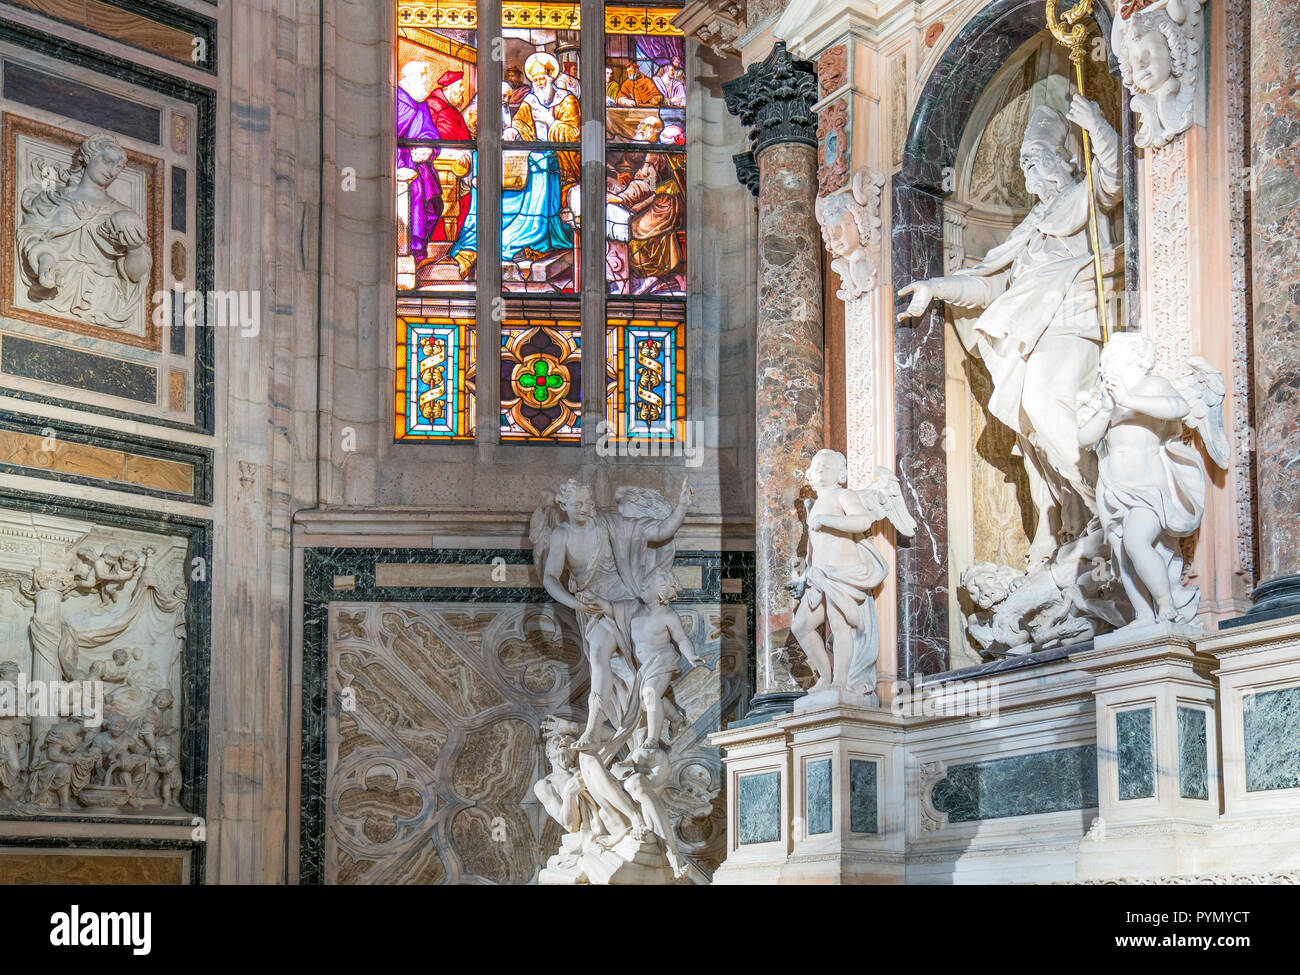 Milan, Italy, The interior of the Duomo Cathedral, the sculptural group of San Giovanni Bosco, by Vincenzo Buzzi - Stock Image